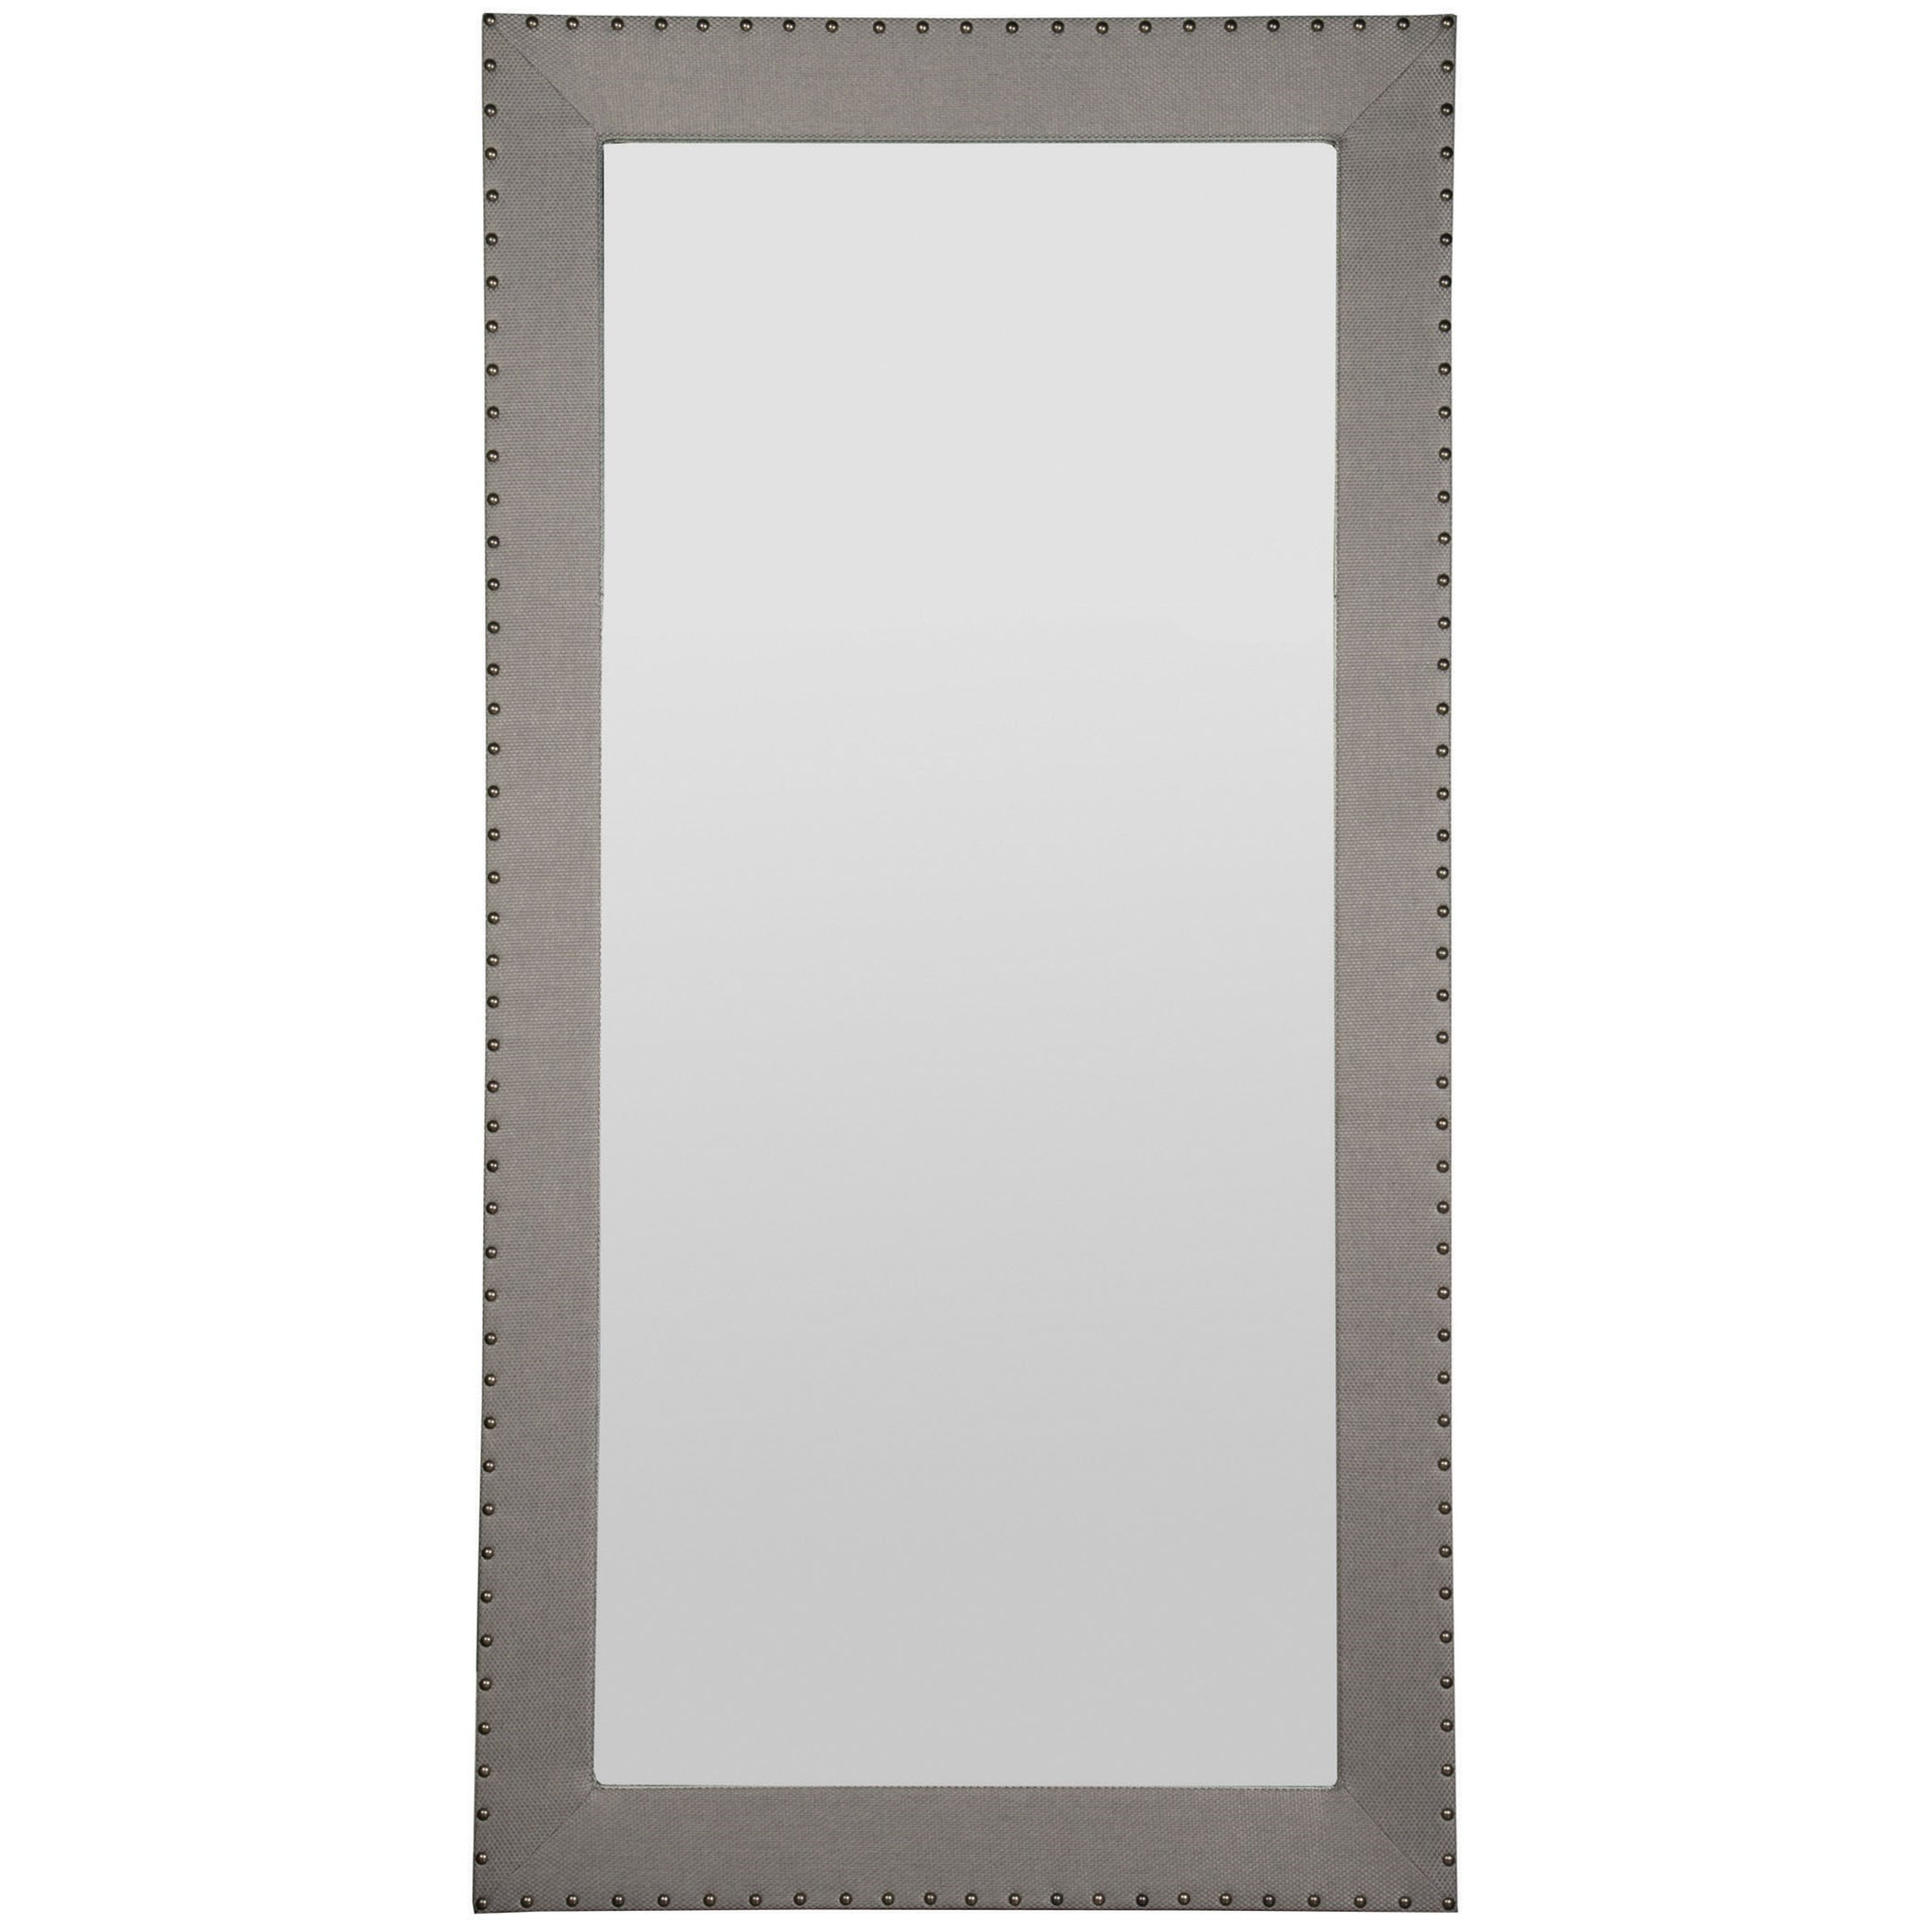 Corinithian Club Upholstered Floor Mirror